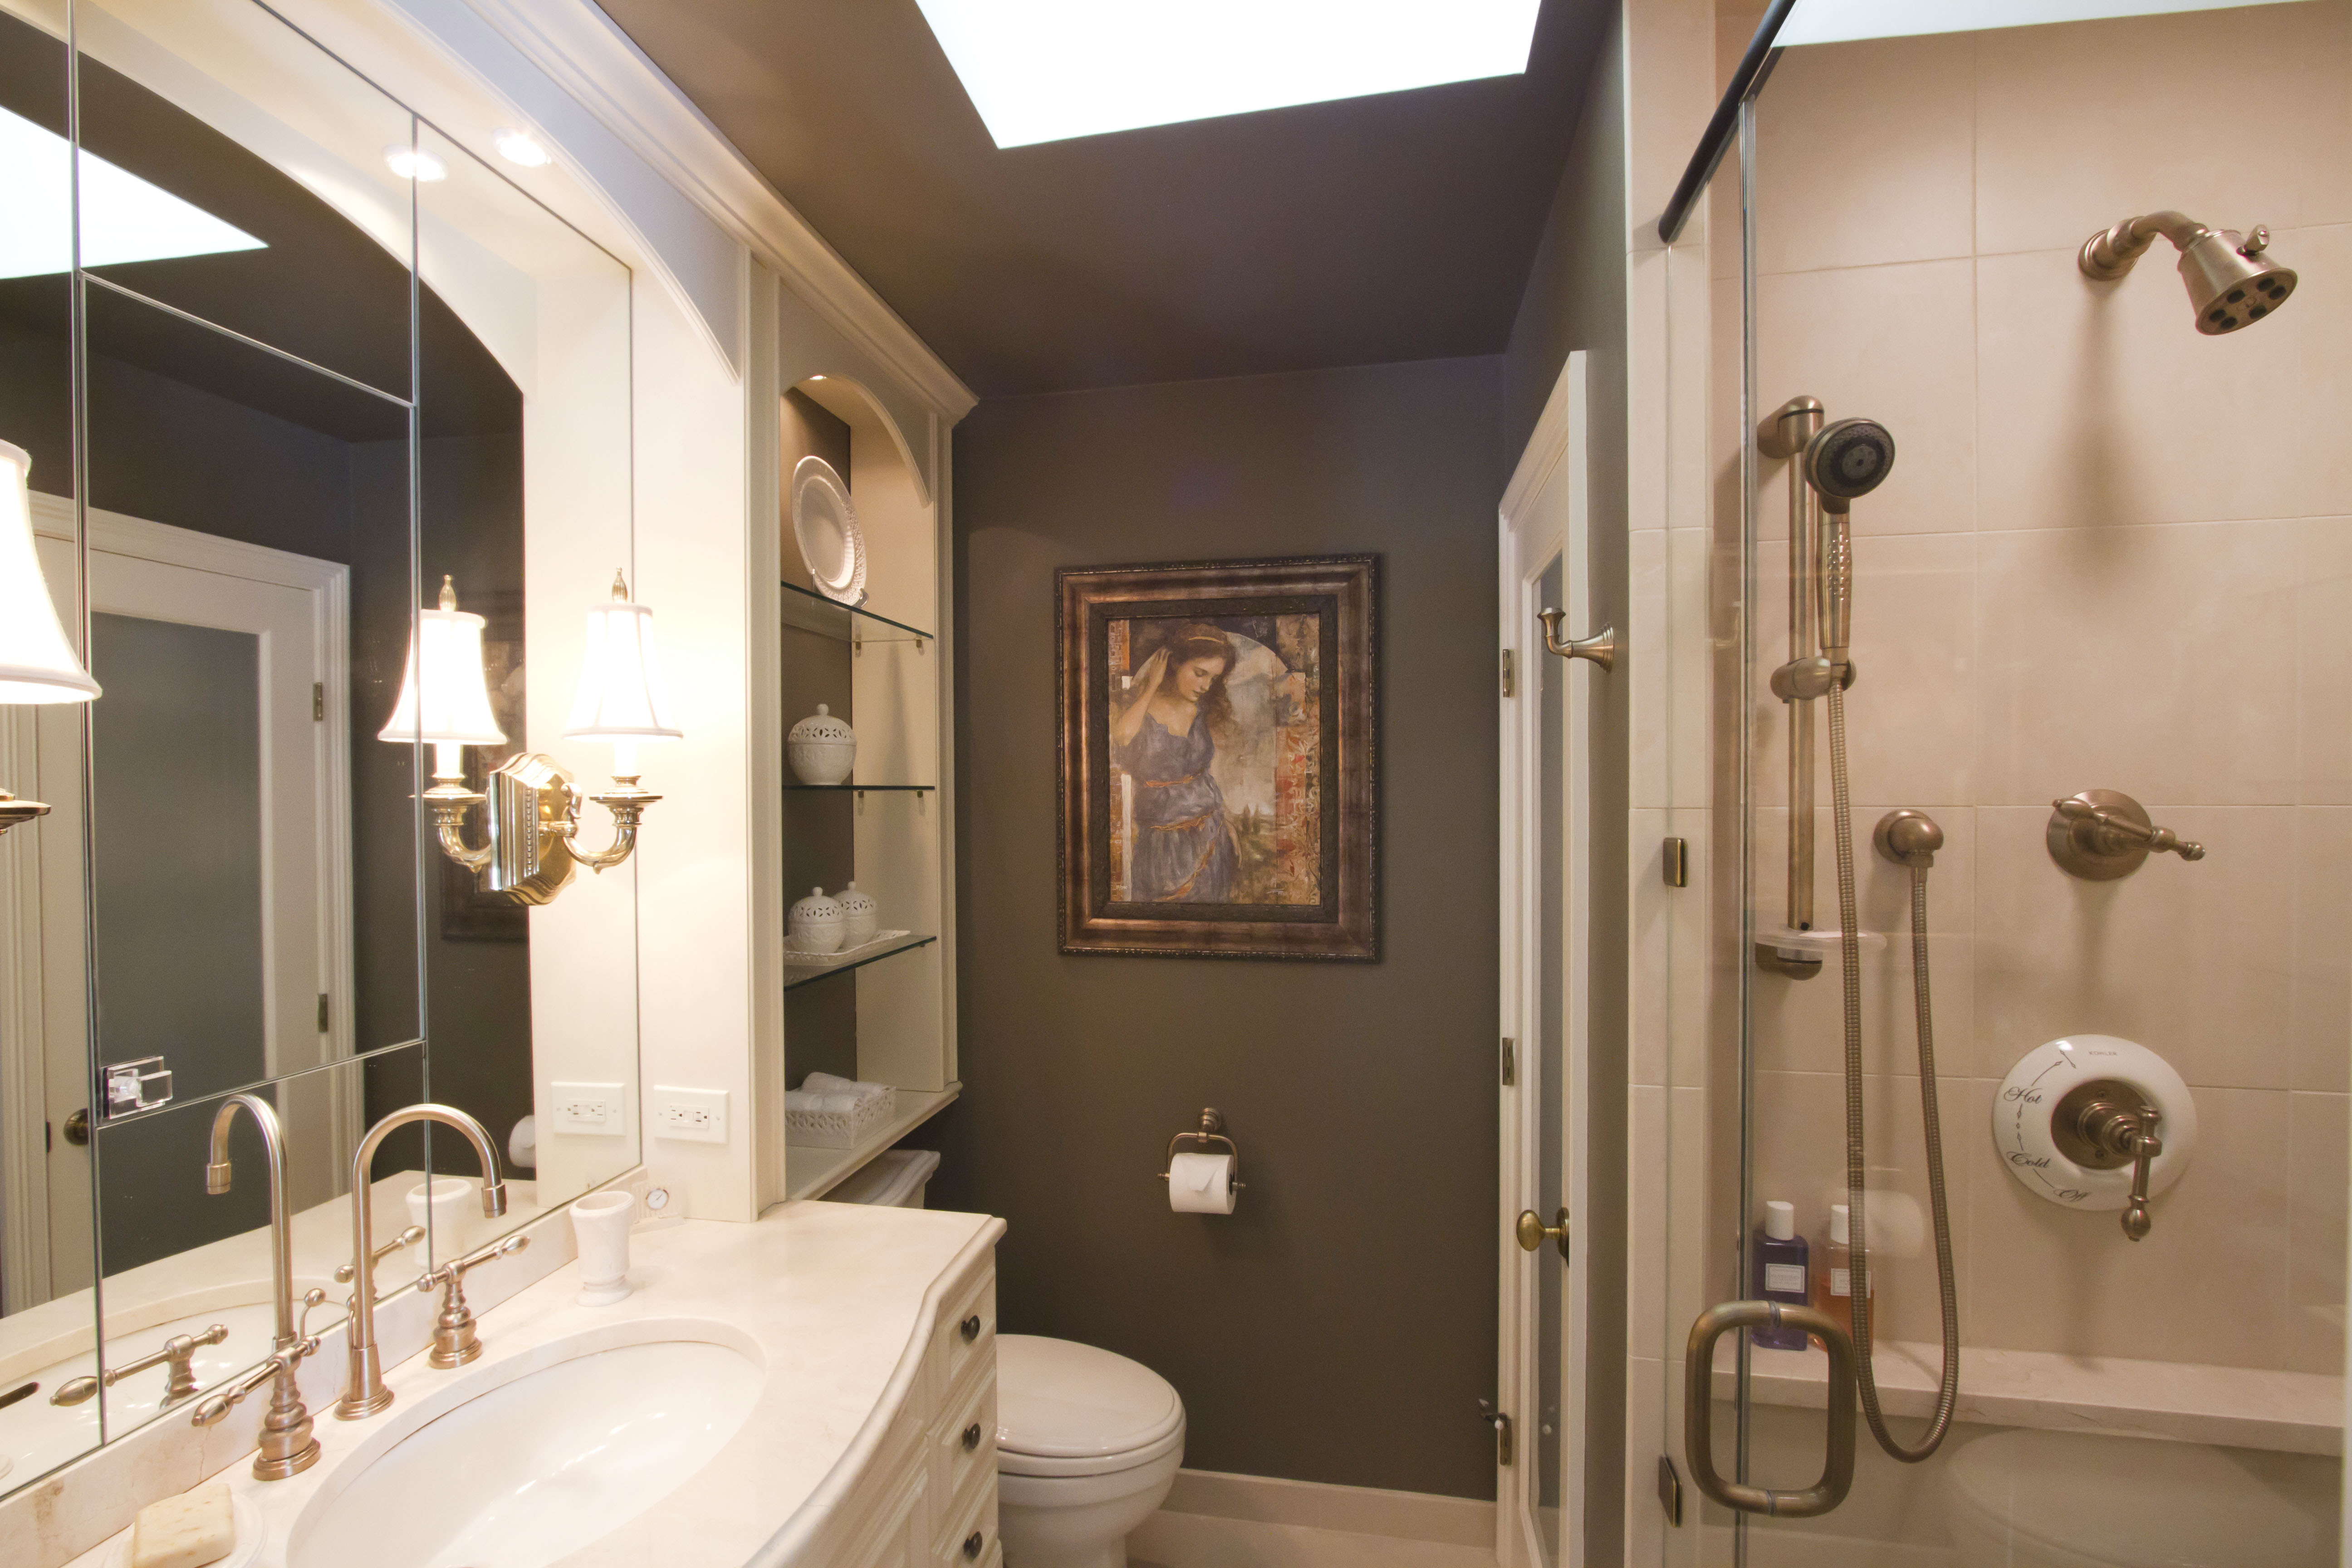 Best ideas about Small Bathroom Plans . Save or Pin home design small bathroom ideas Now.